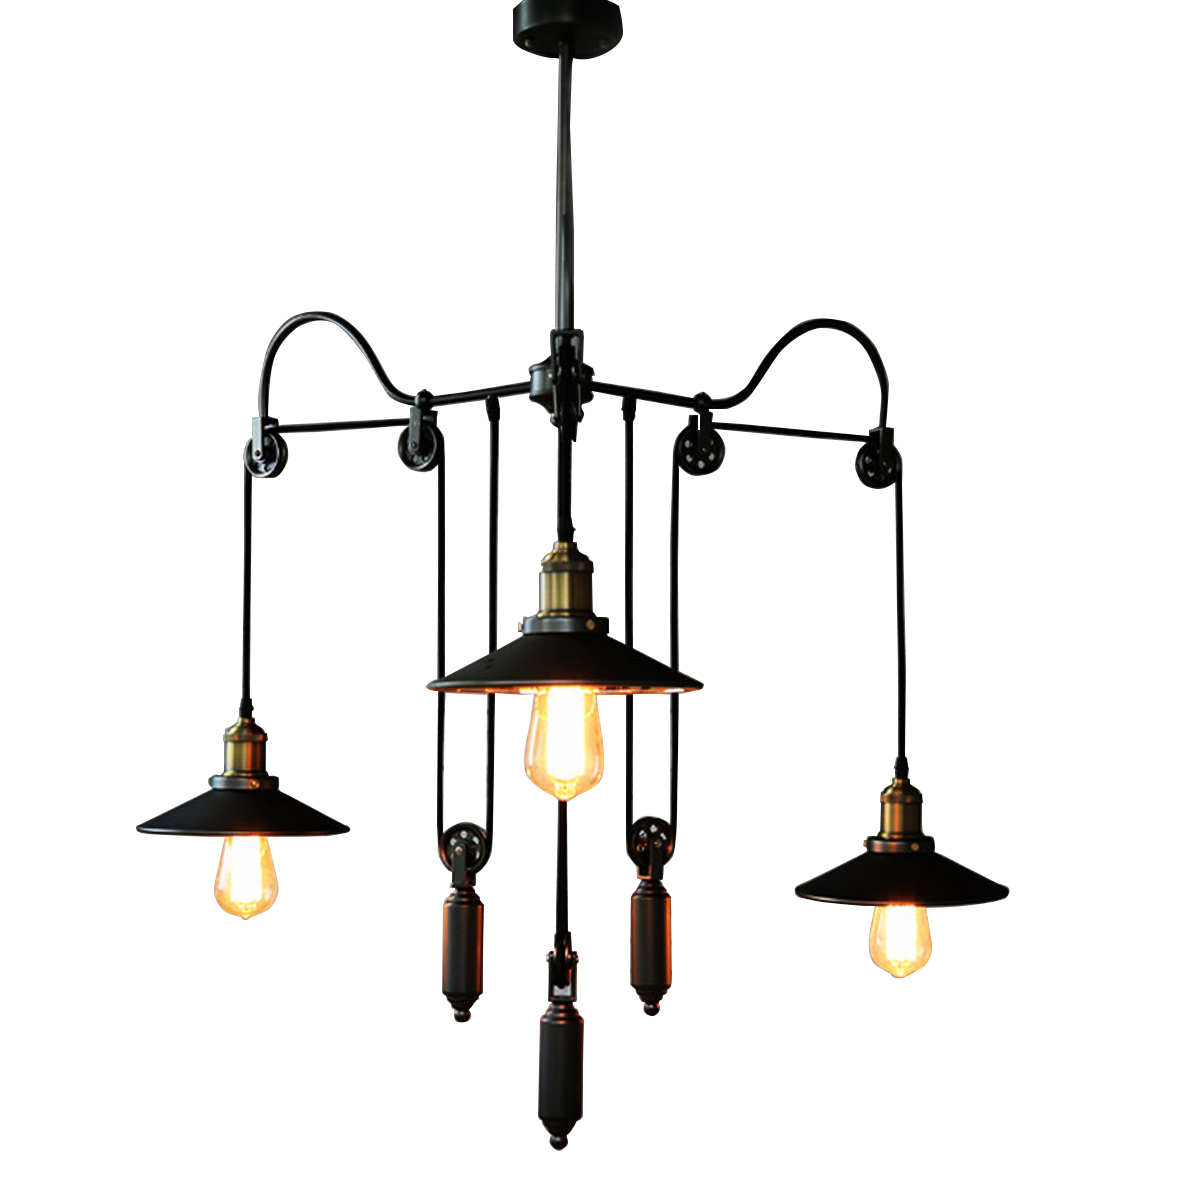 Modern Pendant Lamp Nordic Village Industrial style Pendant Lights Adjustable Pendant Light Telescopic Personality Cafe Lifting(China (Mainland))